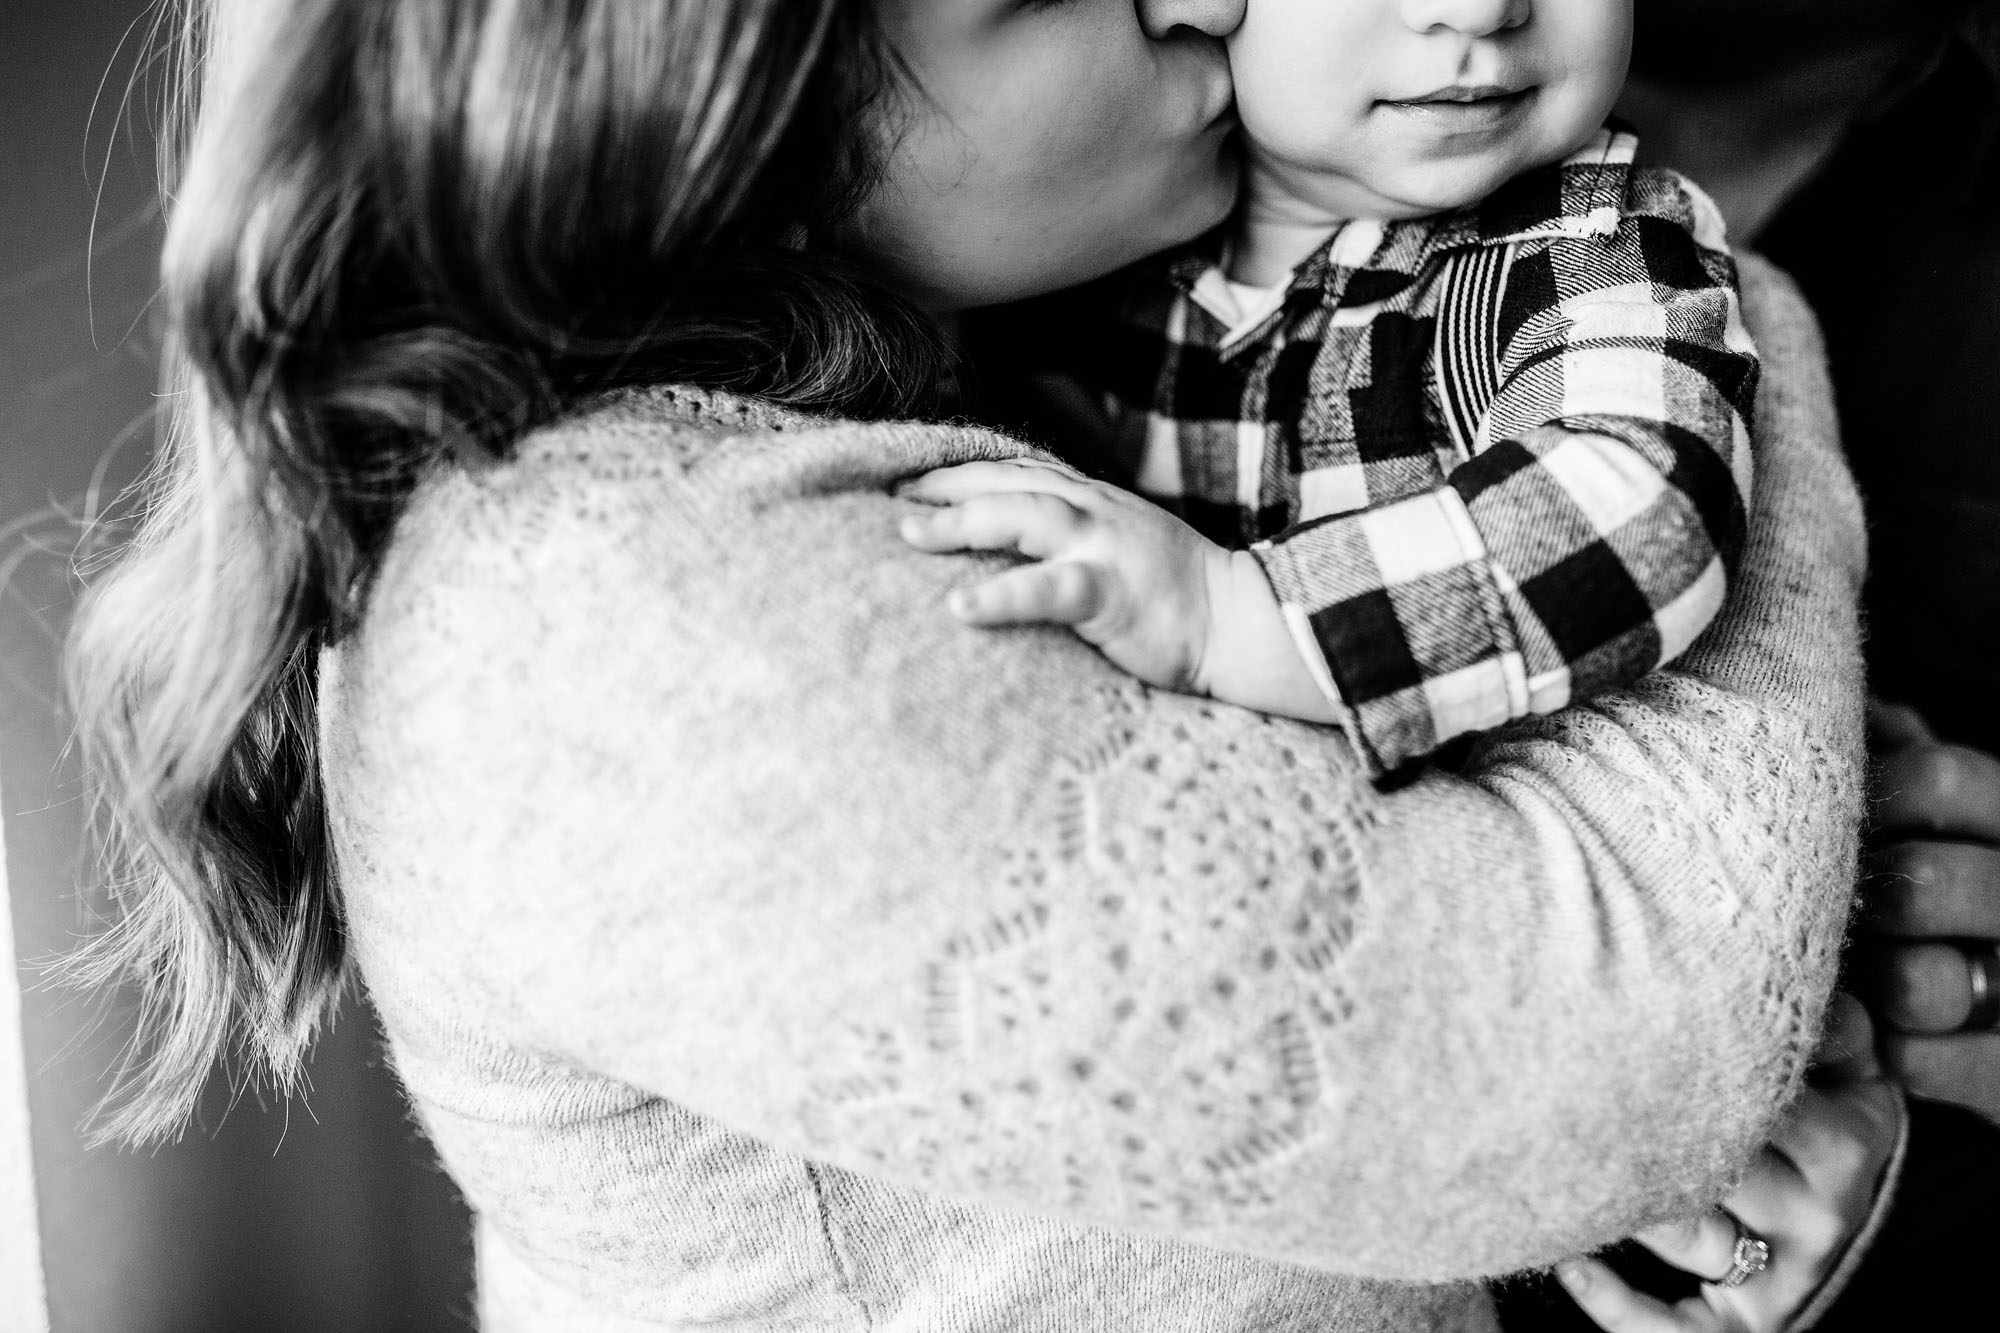 Details are captured of a mother and son's beautiful bond during an in-home family photo session with Amy Wright, a photographer based out of Sacramento, California.